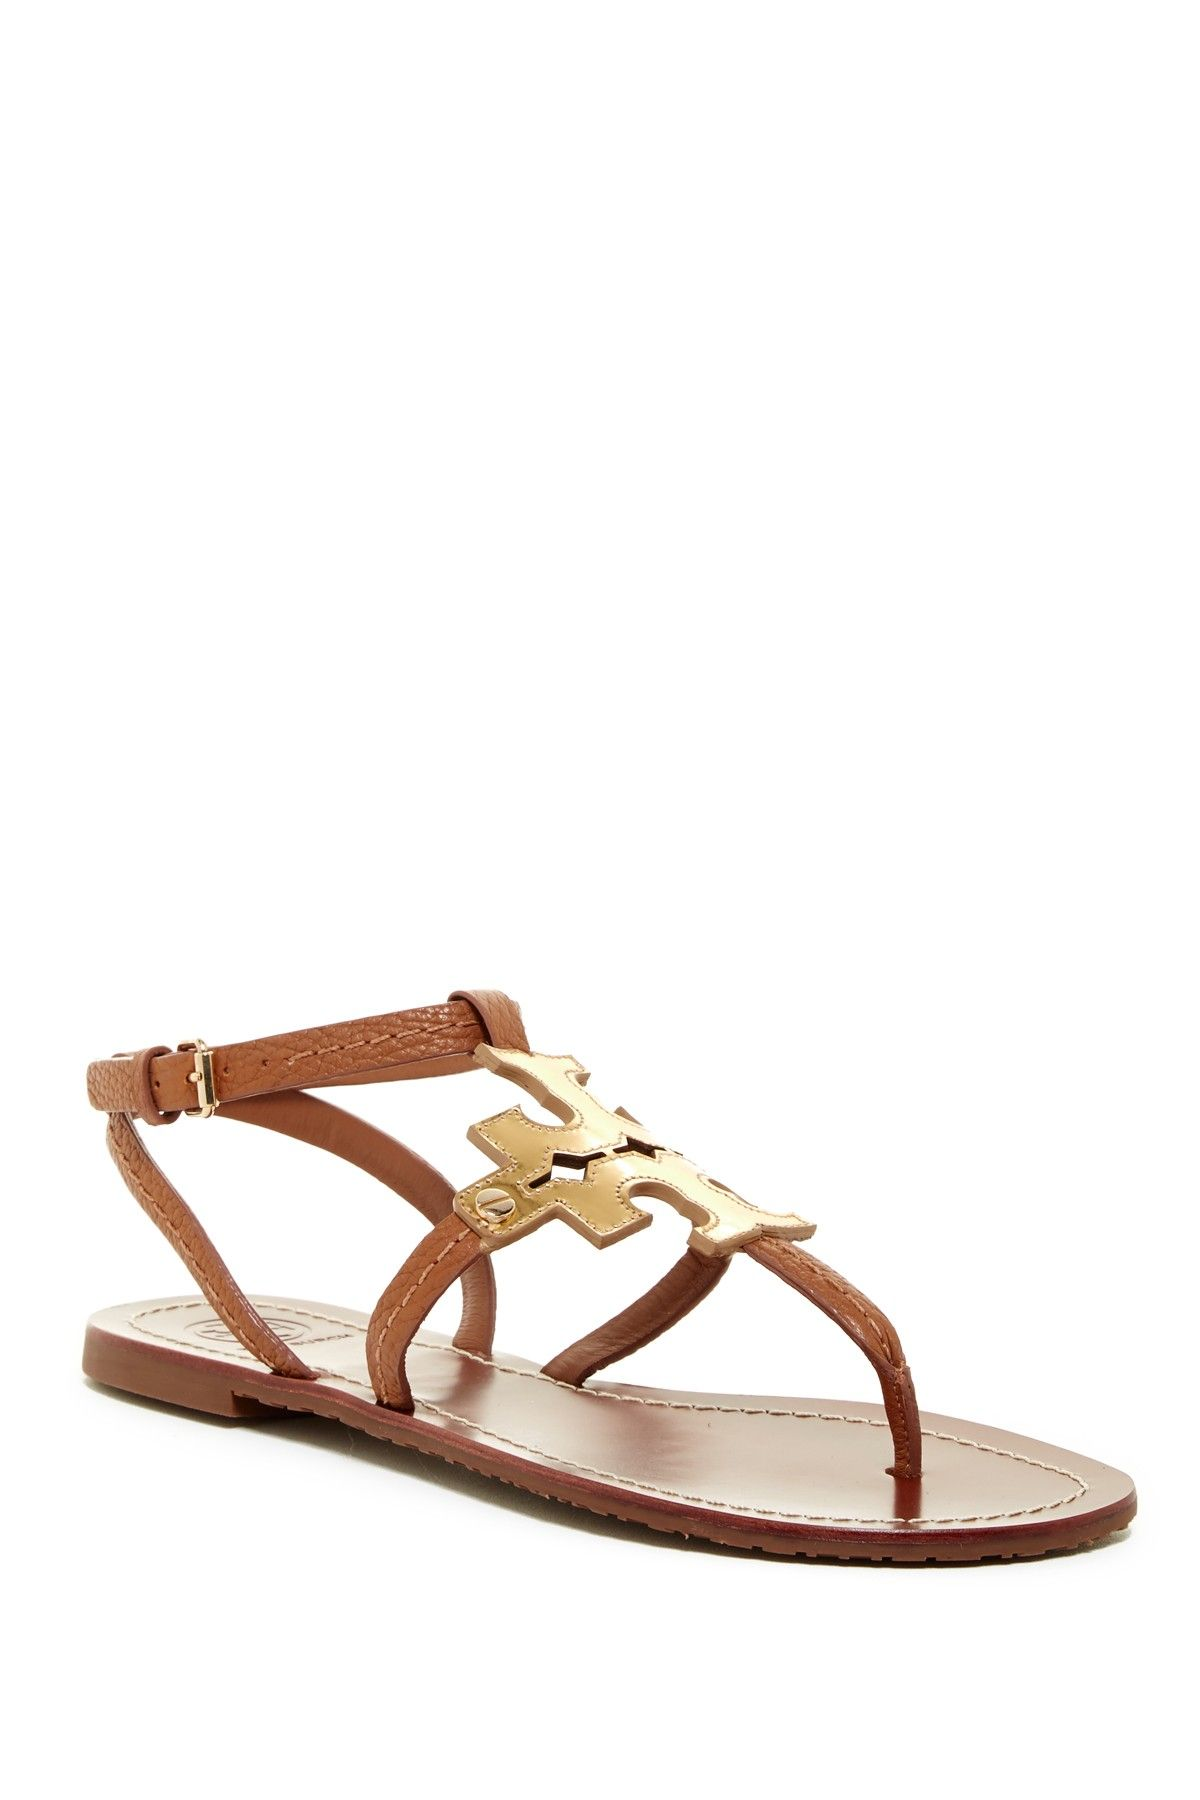 ee57a4f5018632 Chandler Sandal by Tory Burch on  nordstrom rack